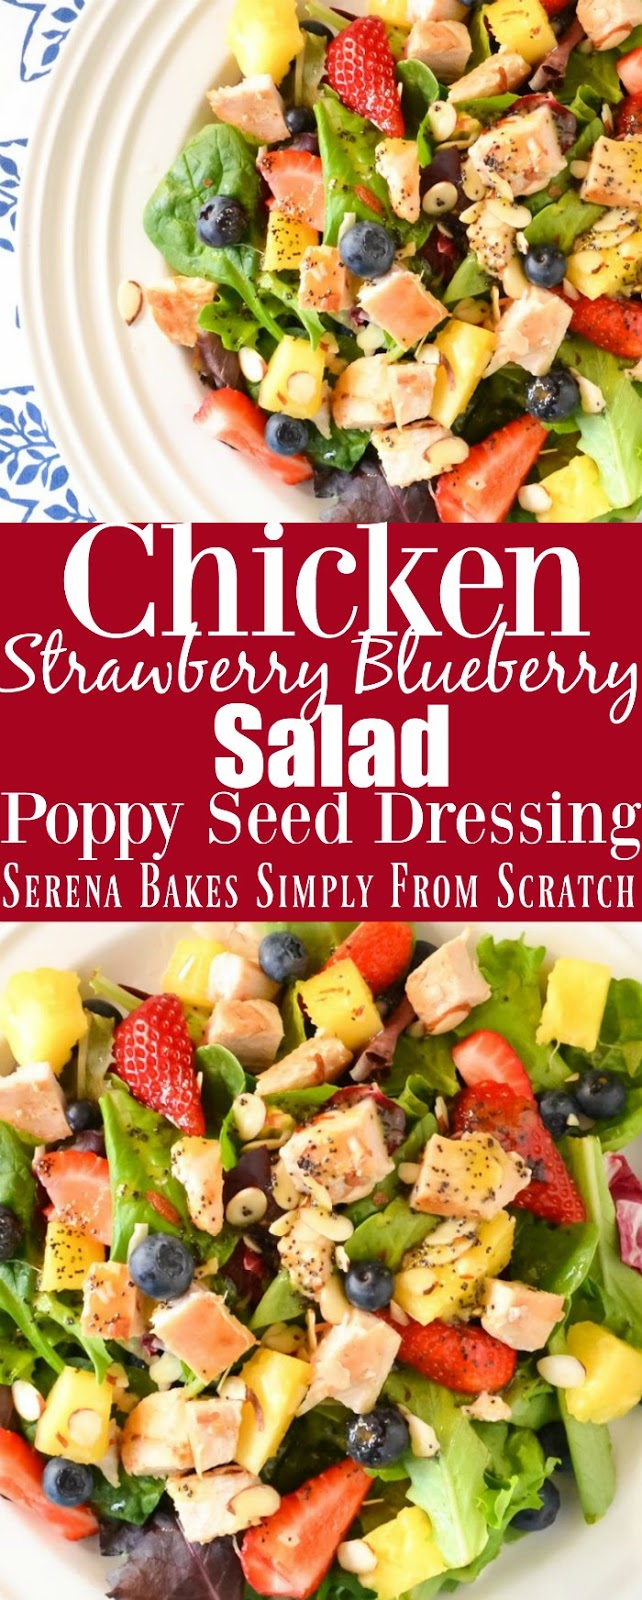 Chicken Strawberry Blueberry Pineapple Salad with Poppy Seed Dressing recipe is an easy to make summer time favorite dinner or side from Serena Bakes Simply From Scratch.